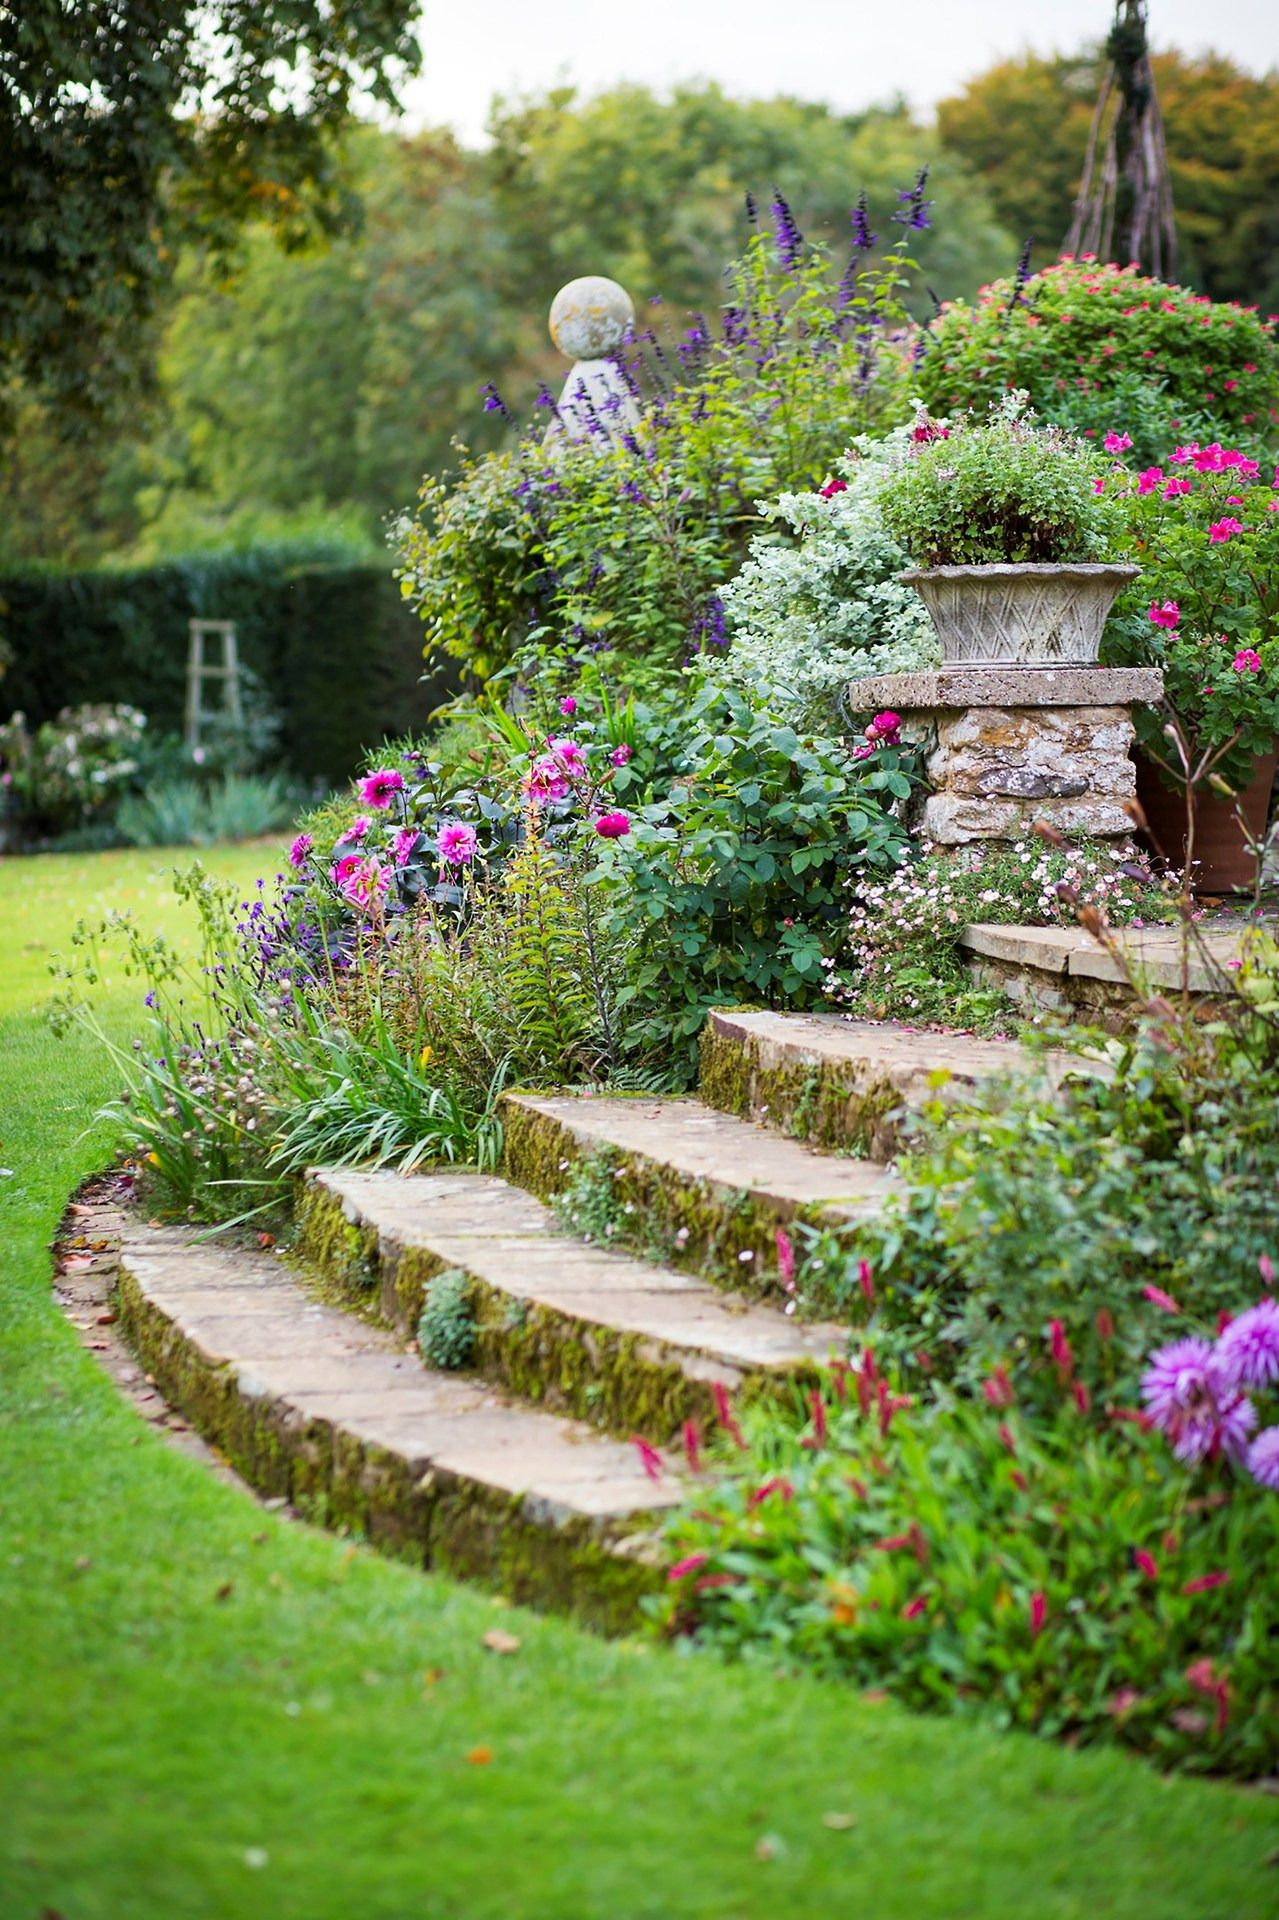 This Is Such A Gorgeous Landscaping Job I Love The Steps And The Mix Of Purple And Pink Flowers Among The Lus Garden Stairs Garden Steps Vintage Garden Decor